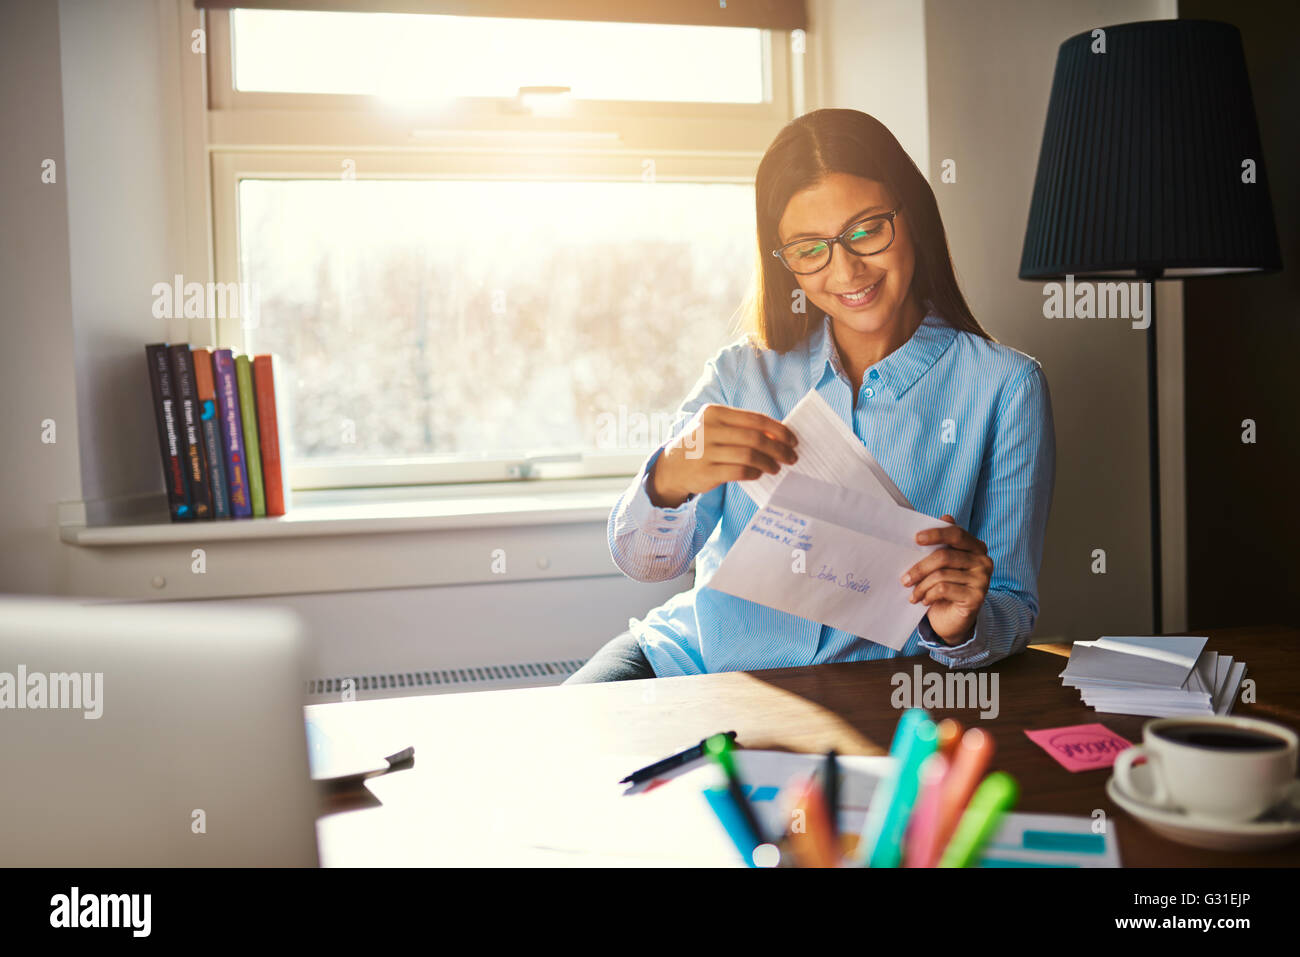 Business woman getting ready to mail a letter looking satisfied - Stock Image